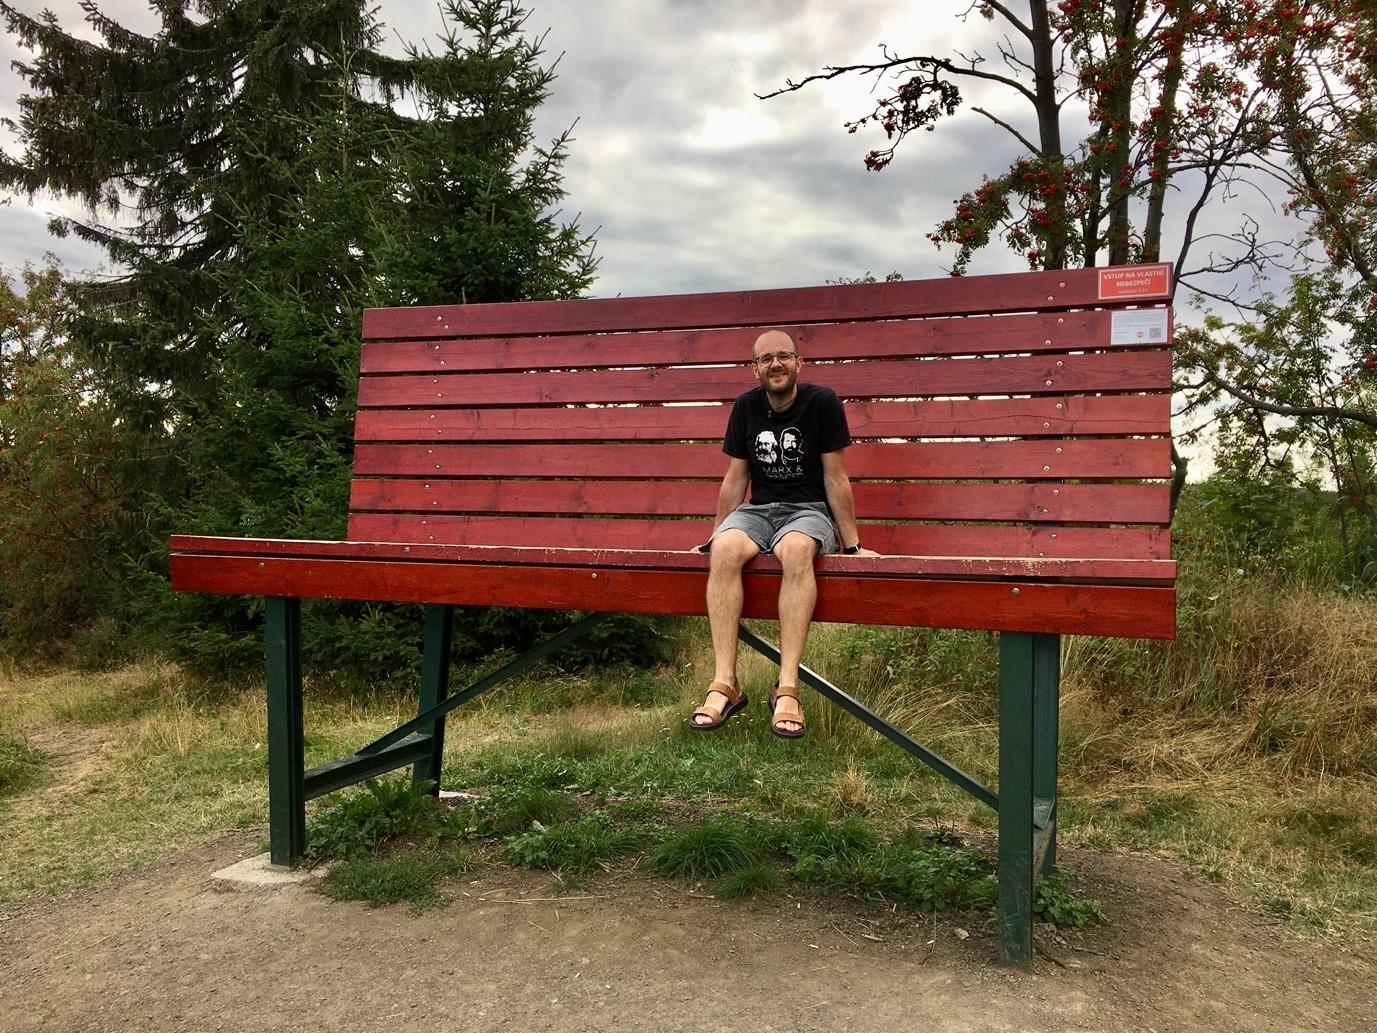 A person sitting on a red bench  Description automatically generated